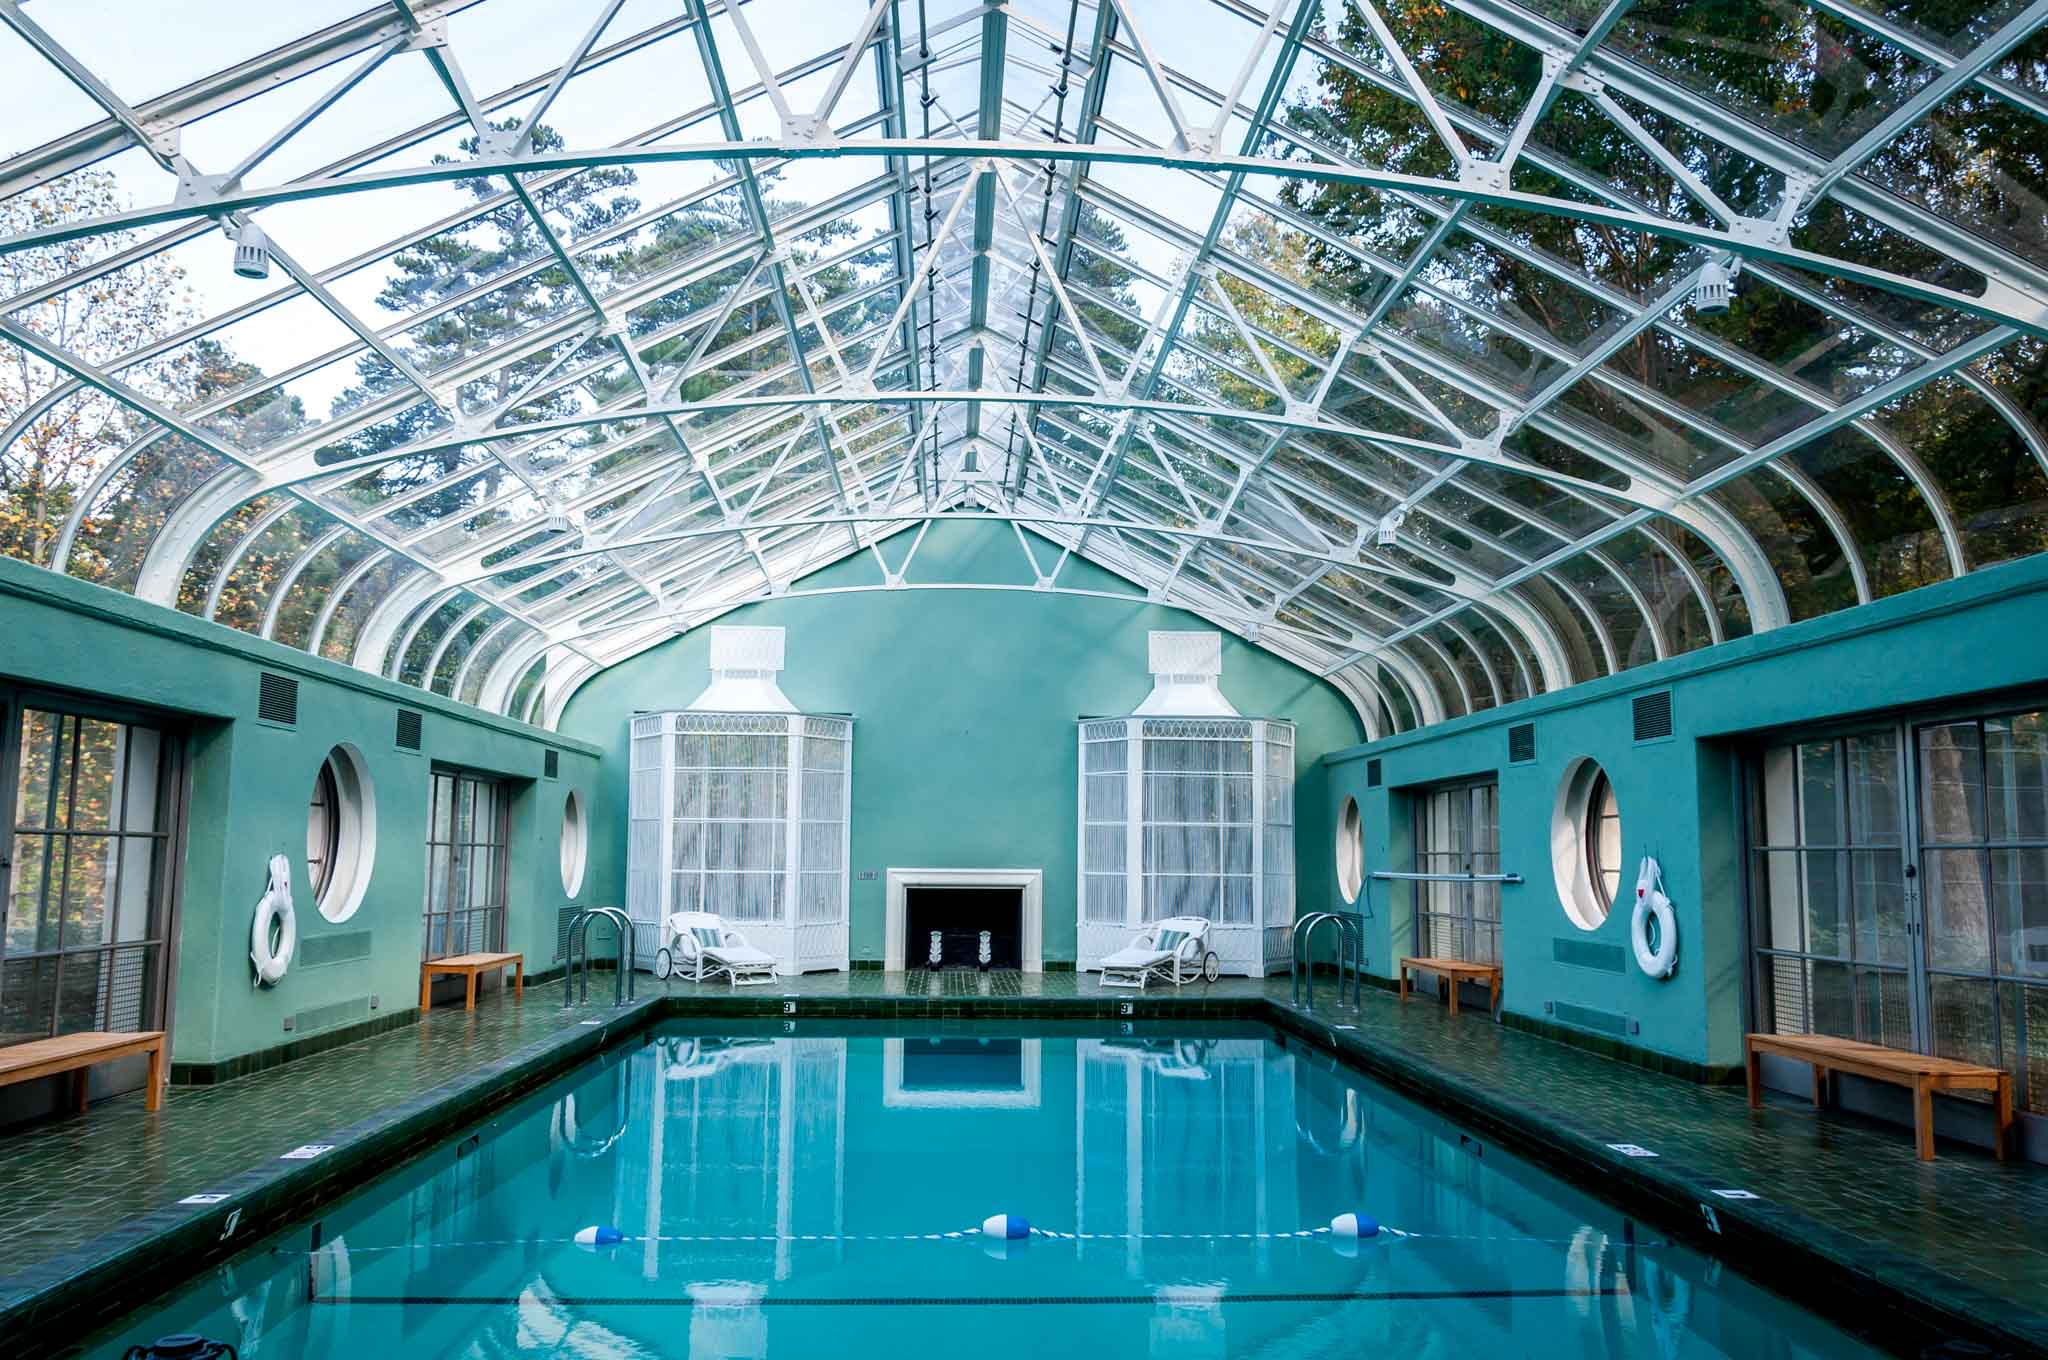 Indoor pool in room with a glass ceiling at the Reynolda House Museum